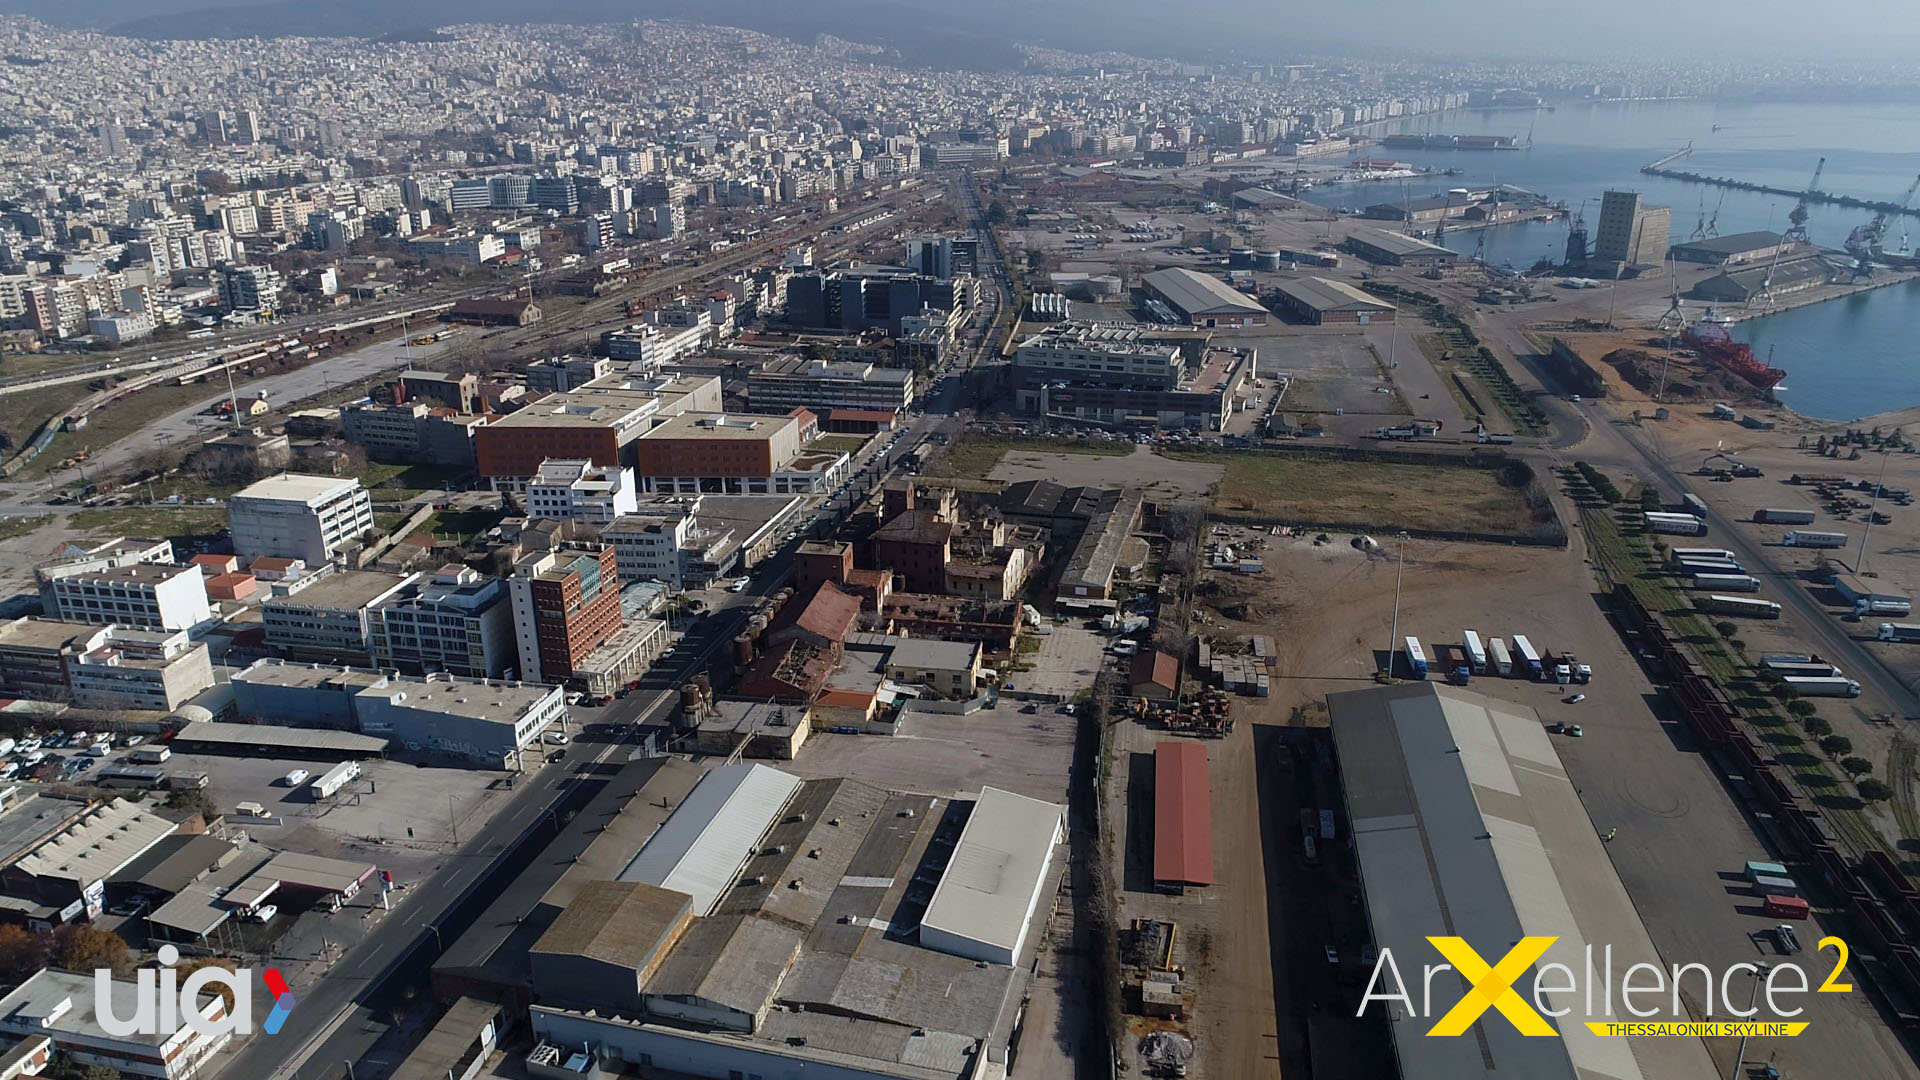 Arxellence_2_competition area_3